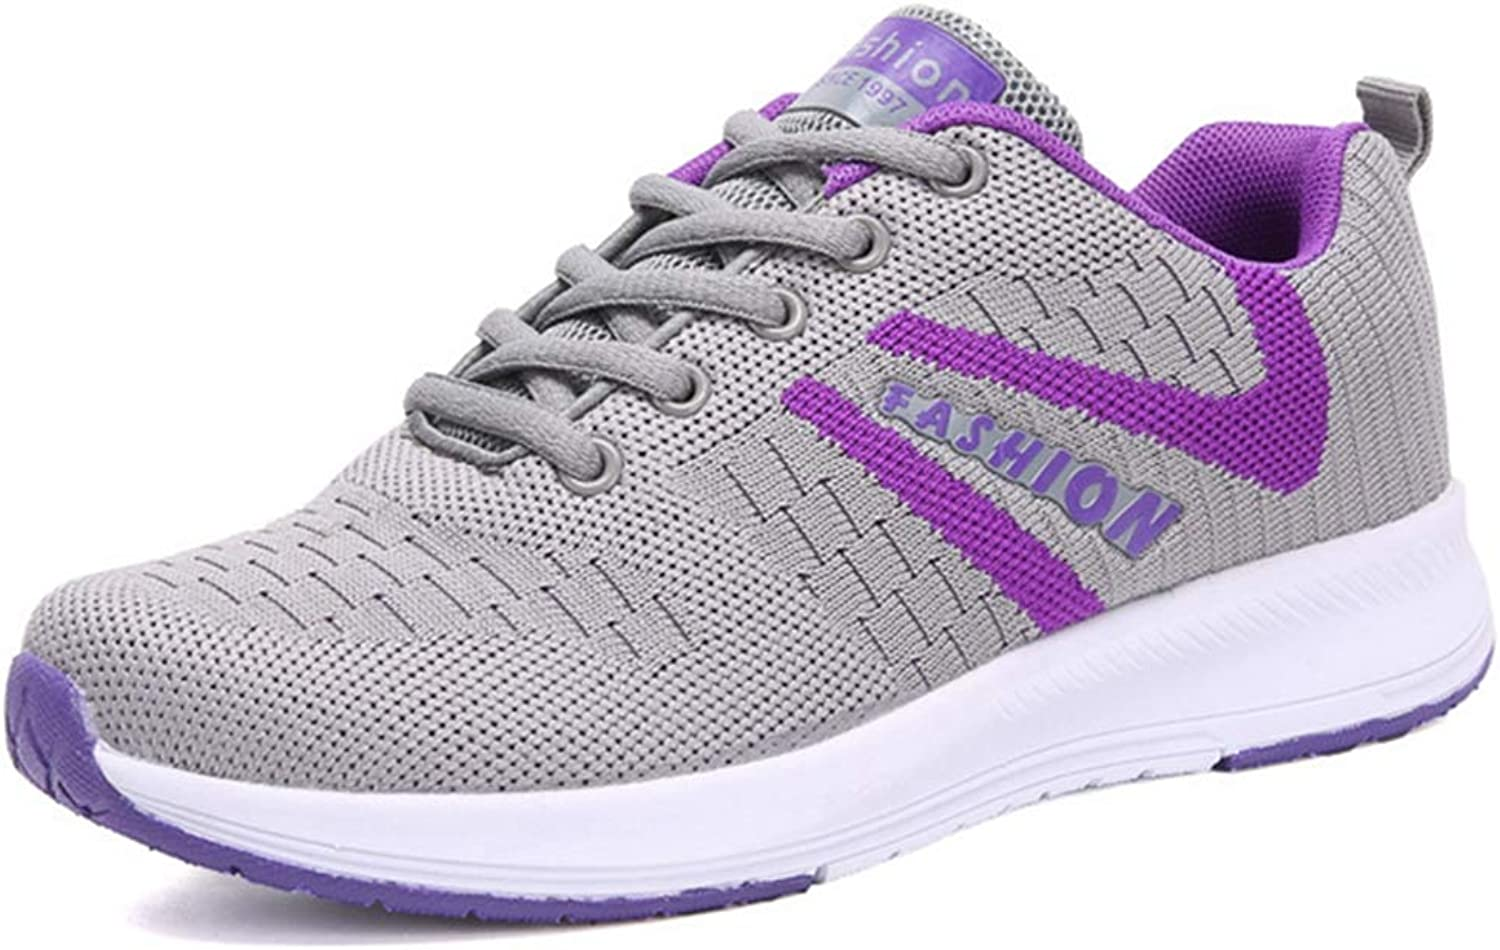 GIY Womens Fashion Sneakers Running shoes Comfort Breathable Mesh Lightweight Casual Walking shoes